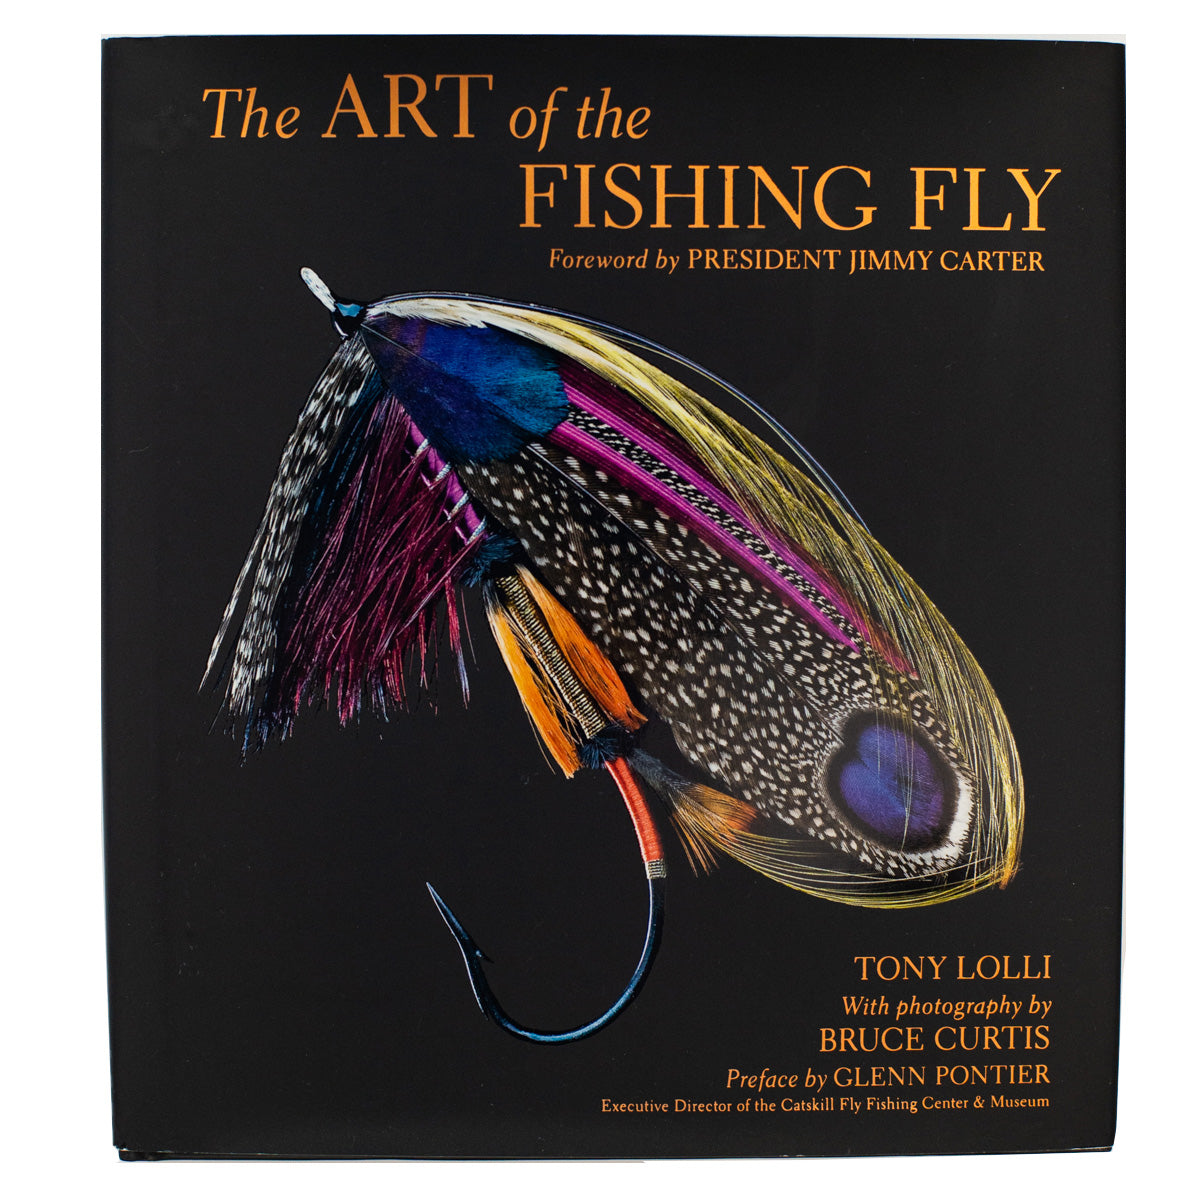 The Art of the Fishing Fly by Tony Lolli